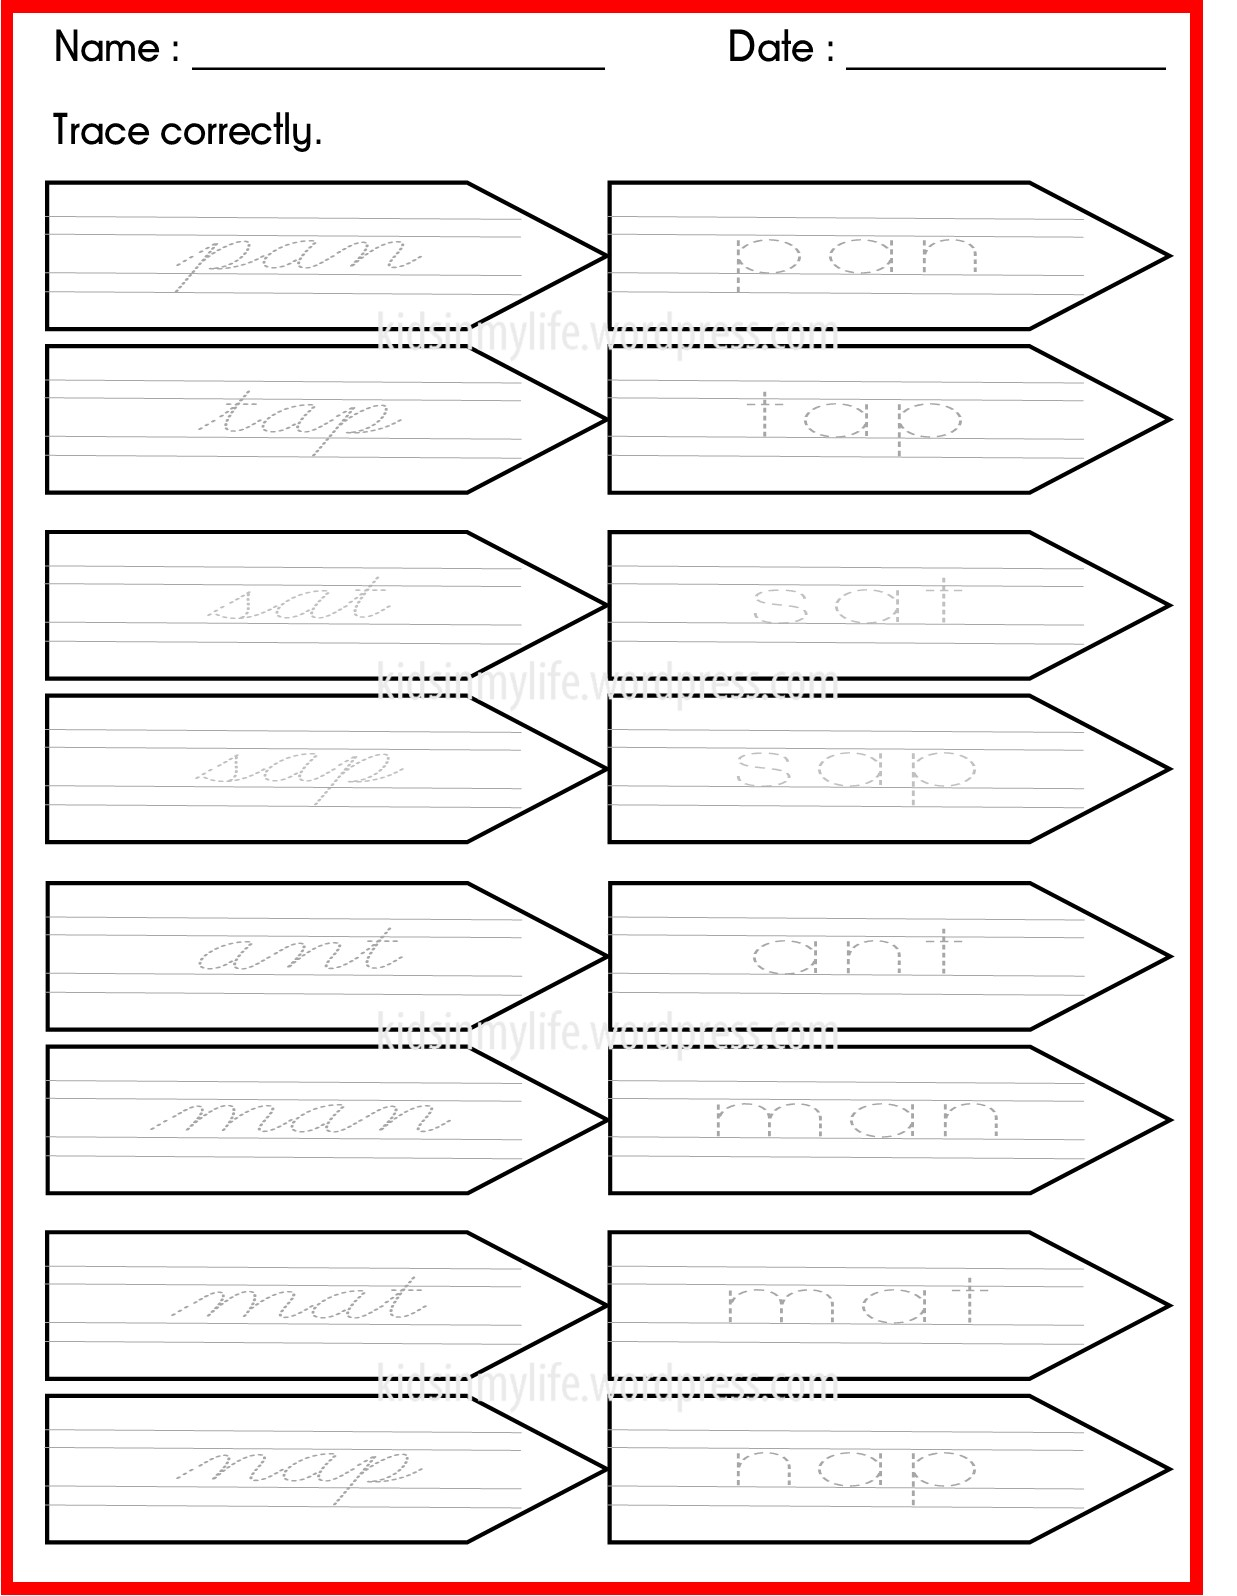 Phonics Cursive Writing Worksheet 1 Kids In My L I F E